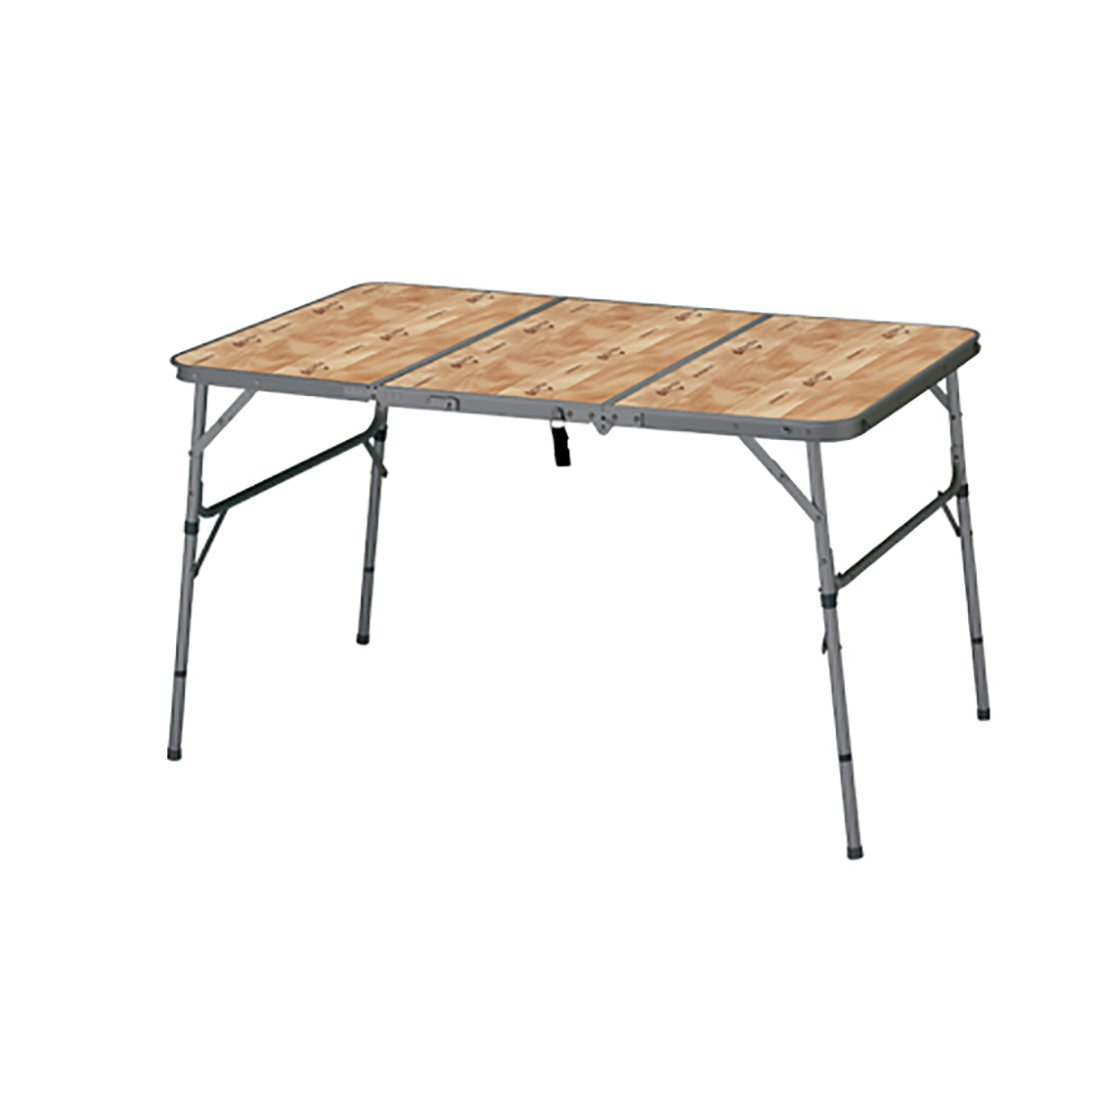 Titan slim 3 folding table by Kovea